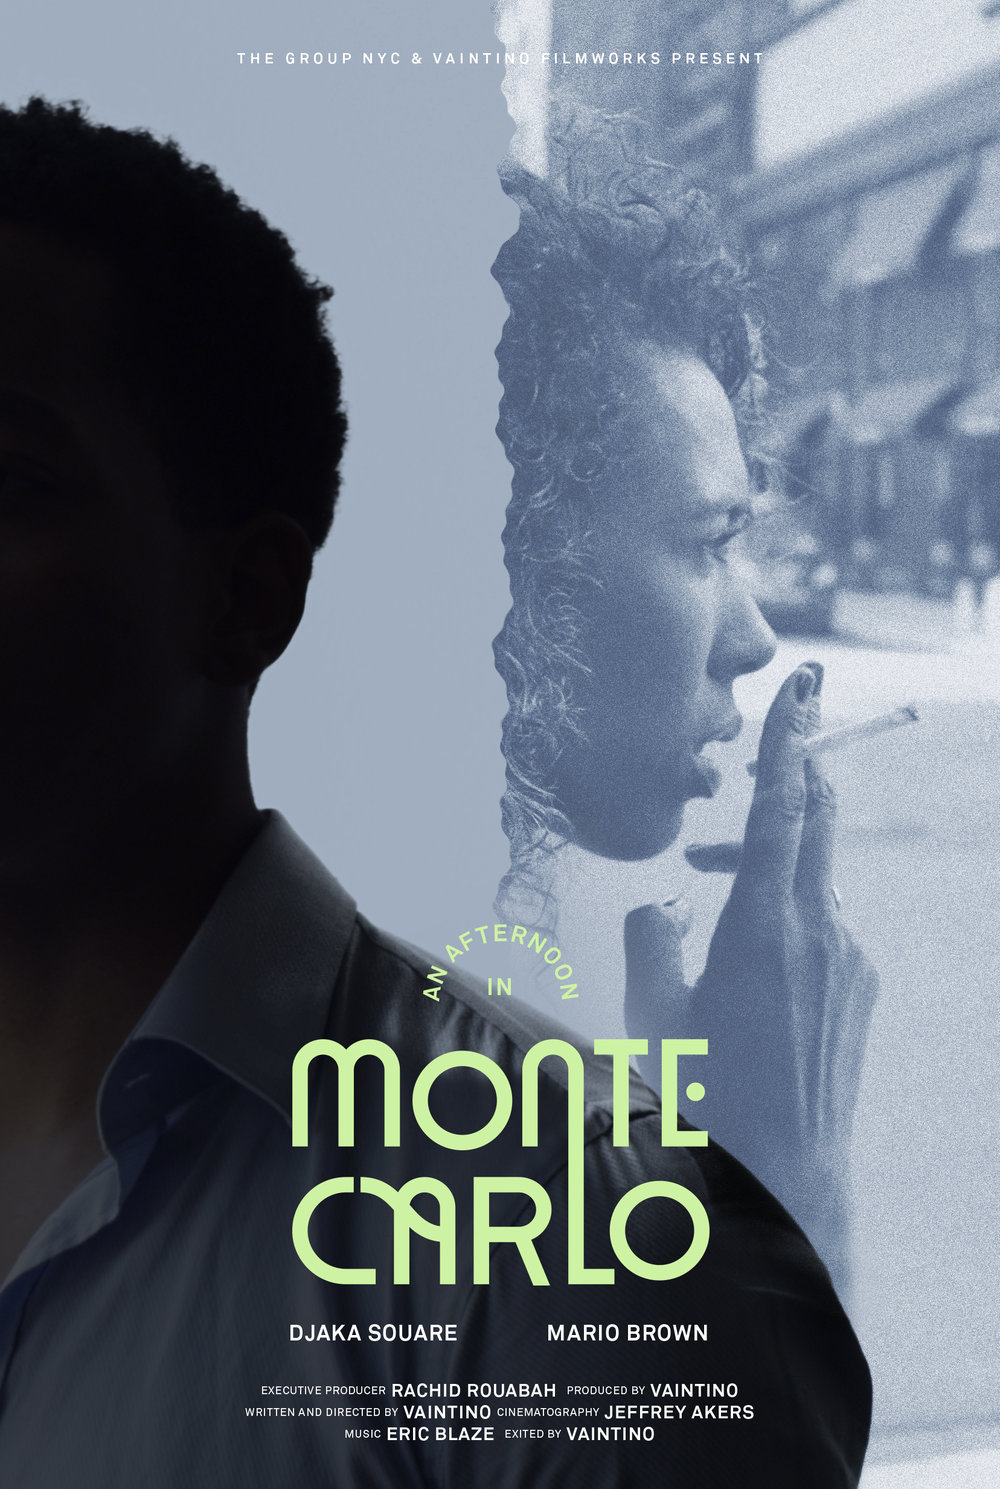 An_Afternoon_in_Monte_Carlo_Cover - Copy.jpg